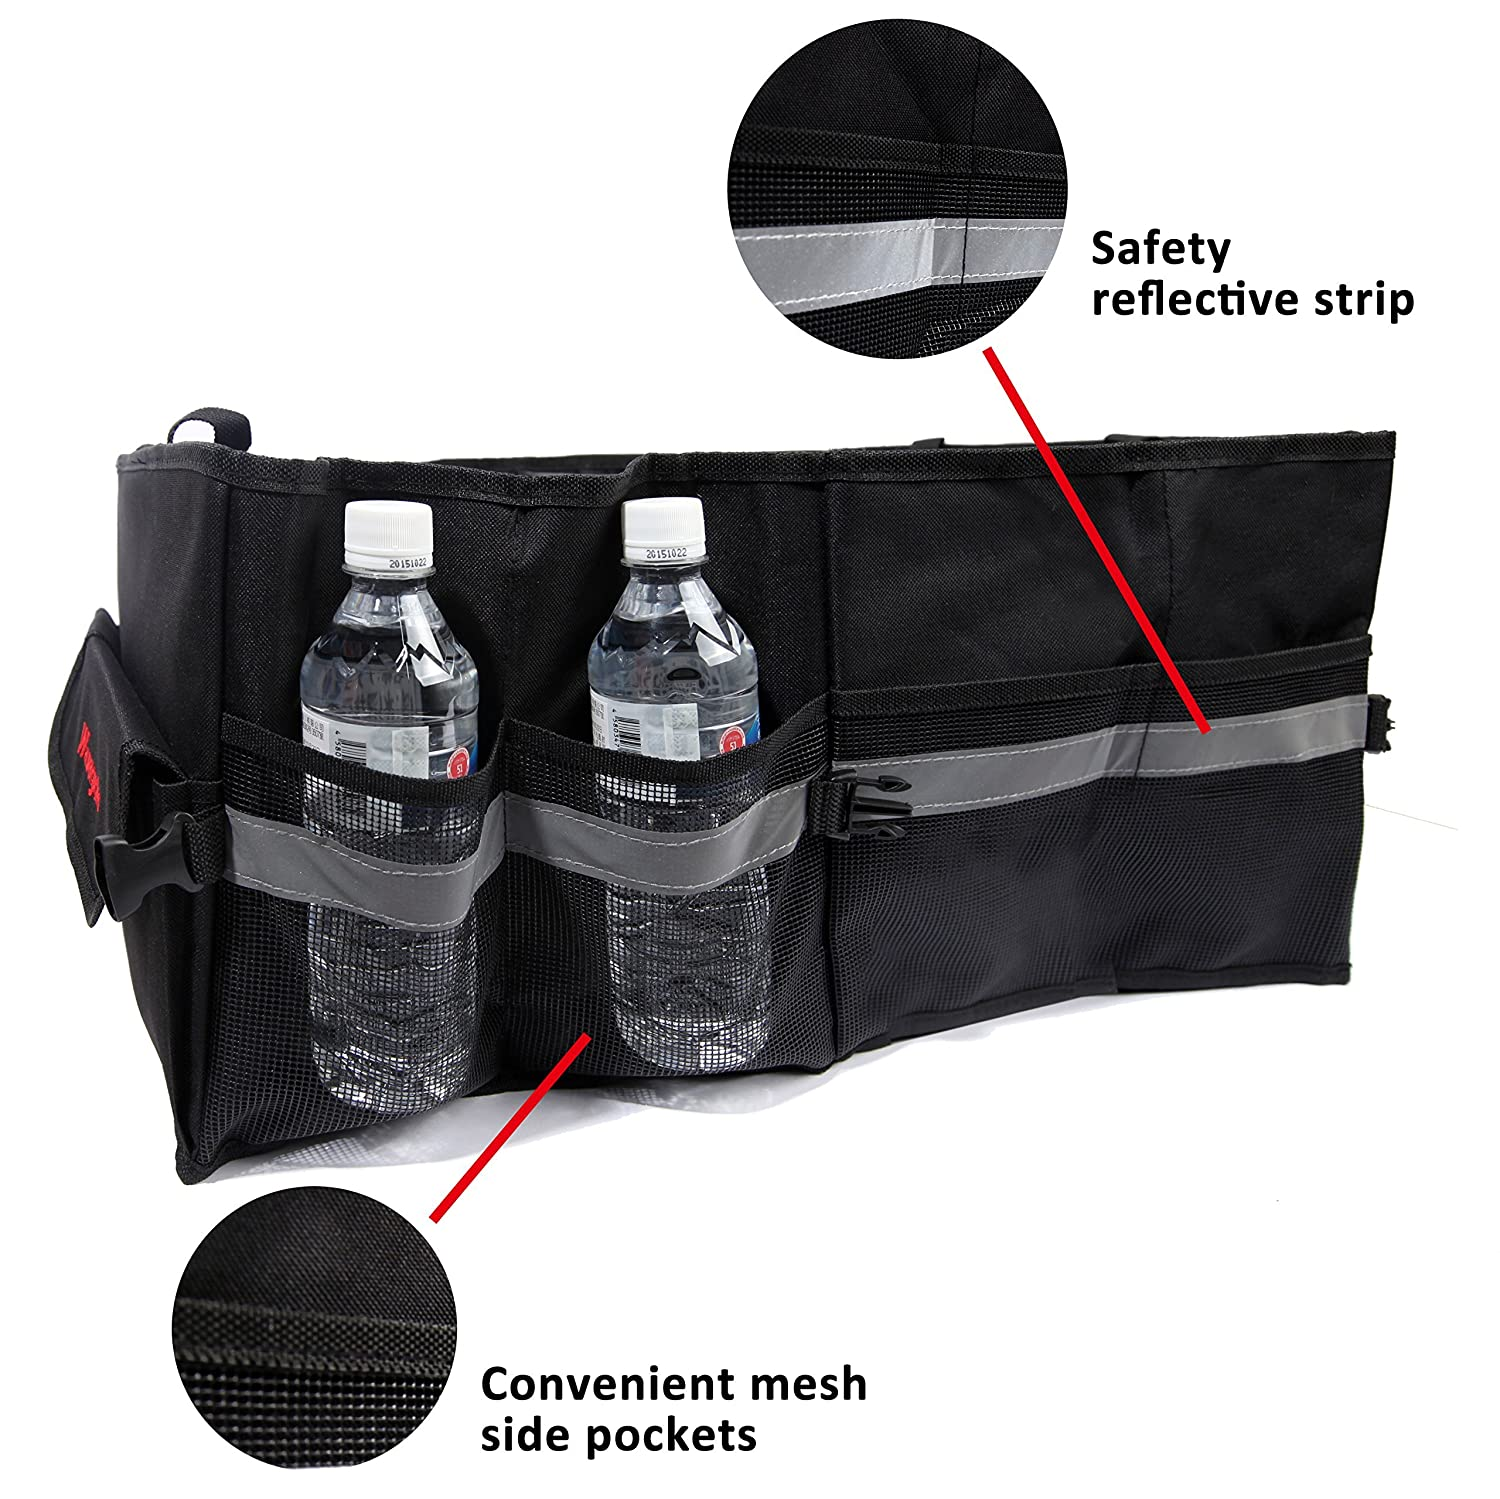 Oxford Fabric Multipurpose Auto Car SUV Organizer Folding Collapsible Best Car Organizer for all Cargo Wawacycles Premium Trunk Organizer Great for Travel Vocation Trip Camping